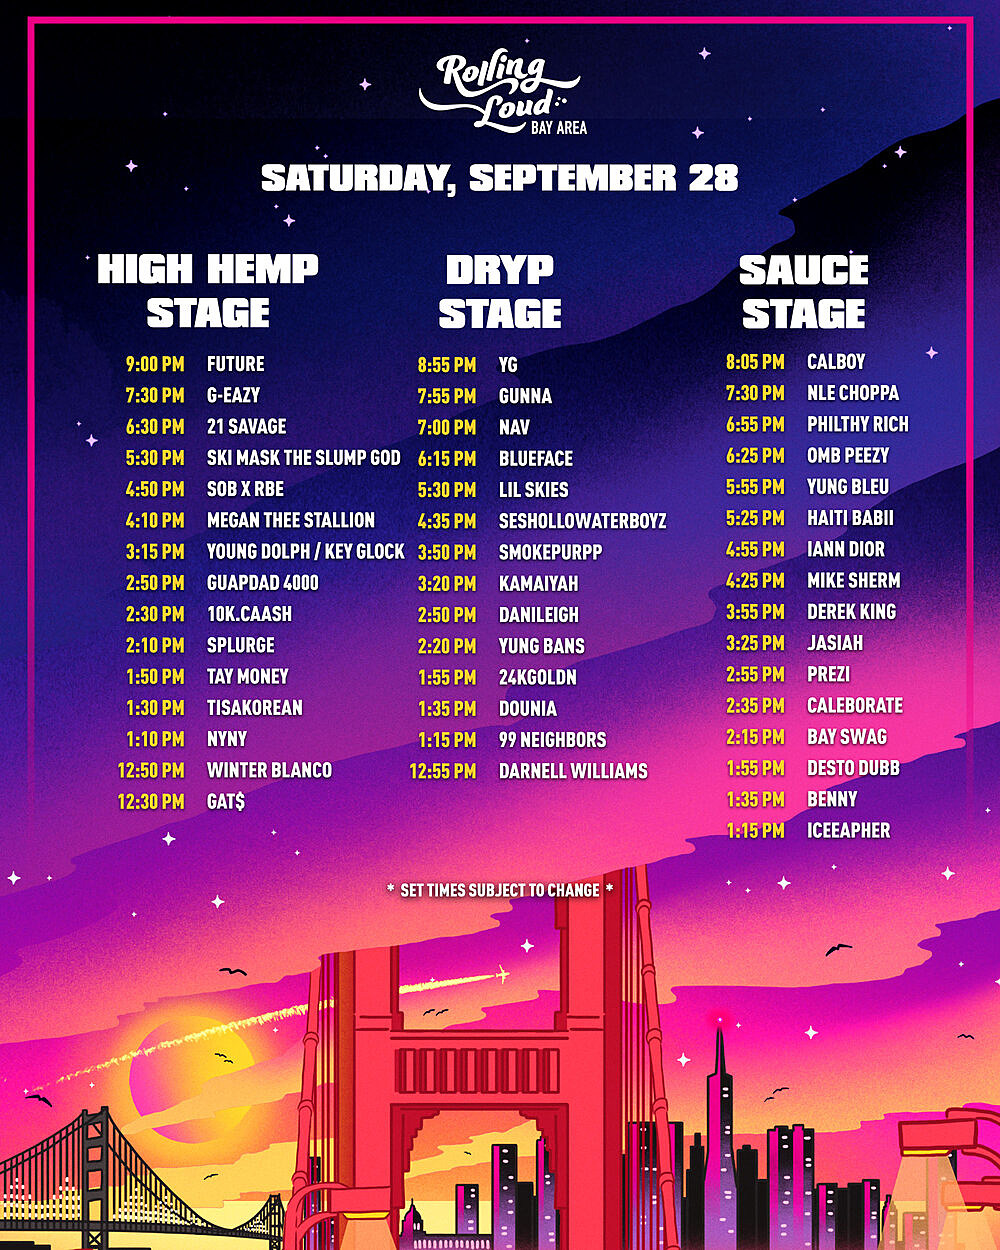 Rolling Loud Bay Area 2019 - Saturday set times